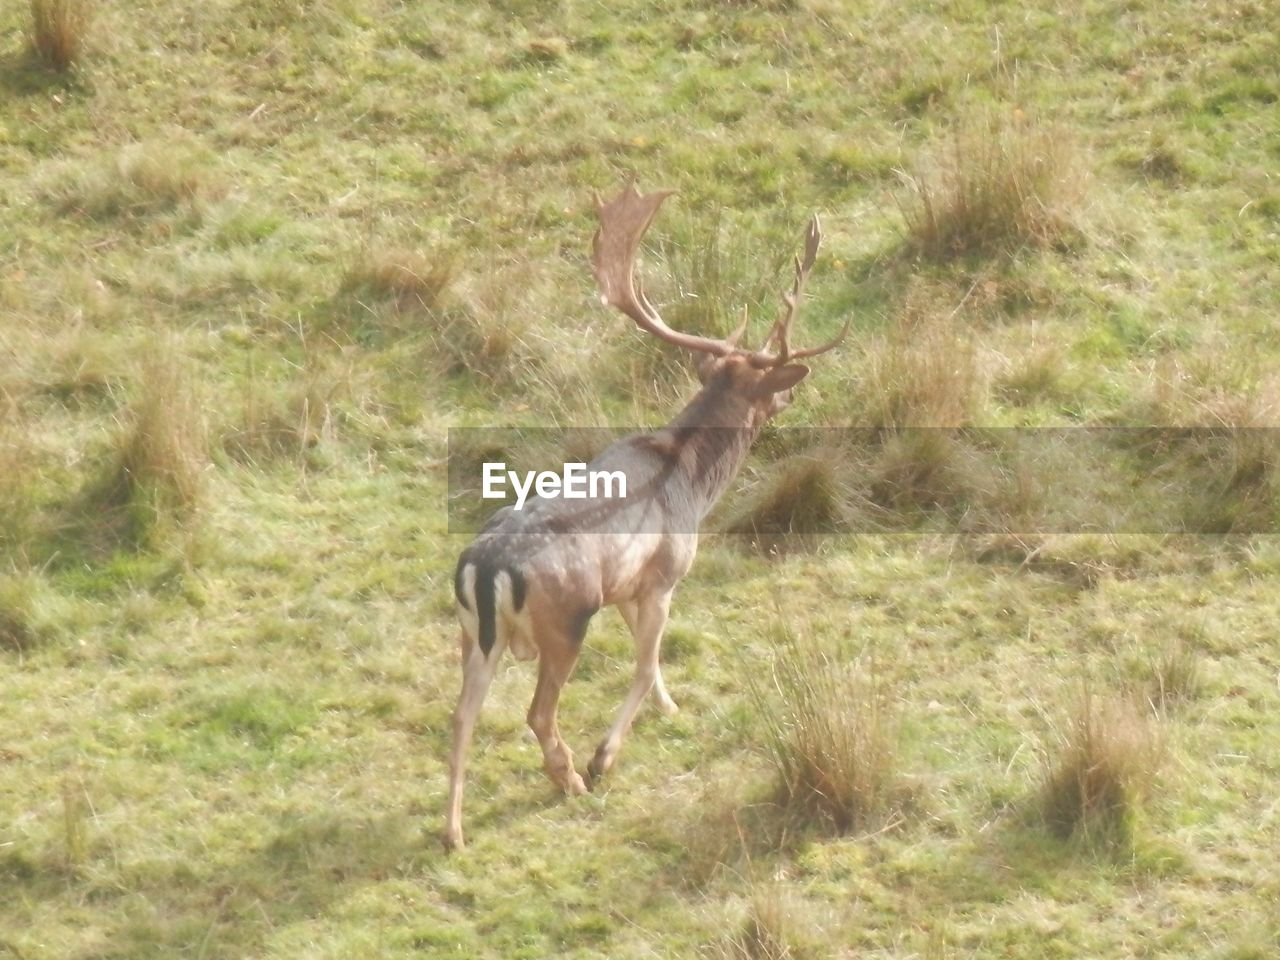 animals in the wild, animal themes, antler, deer, grass, one animal, field, nature, animal wildlife, mammal, antelope, no people, stag, beauty in nature, day, outdoors